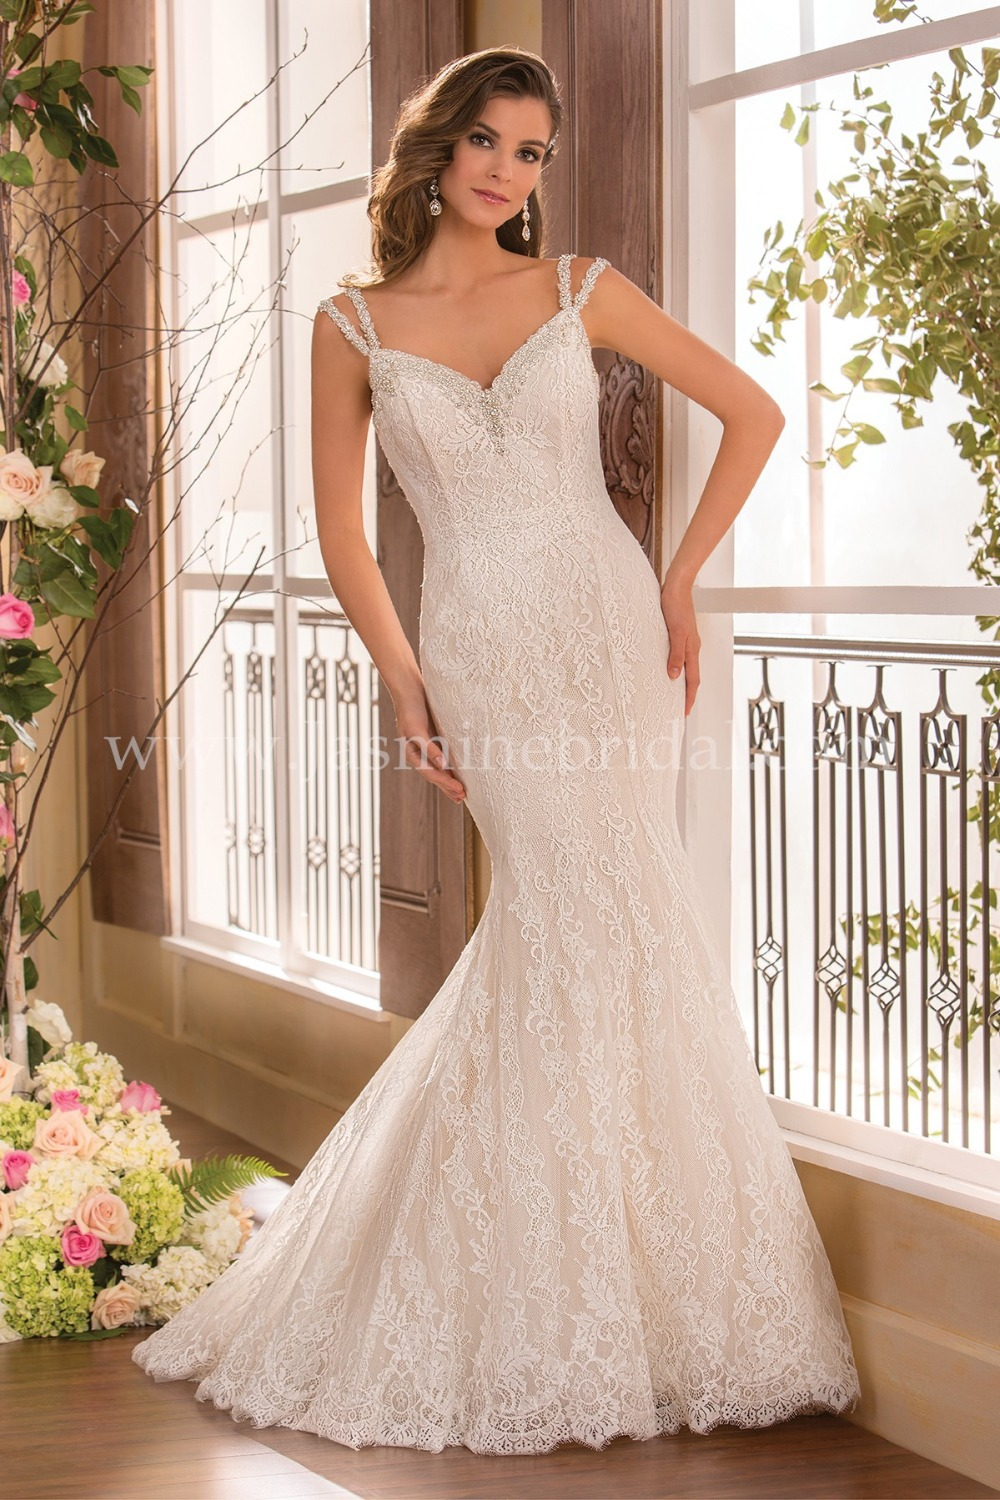 Vestido de noiva new style 2015 long wedding dress with for New wedding dress styles